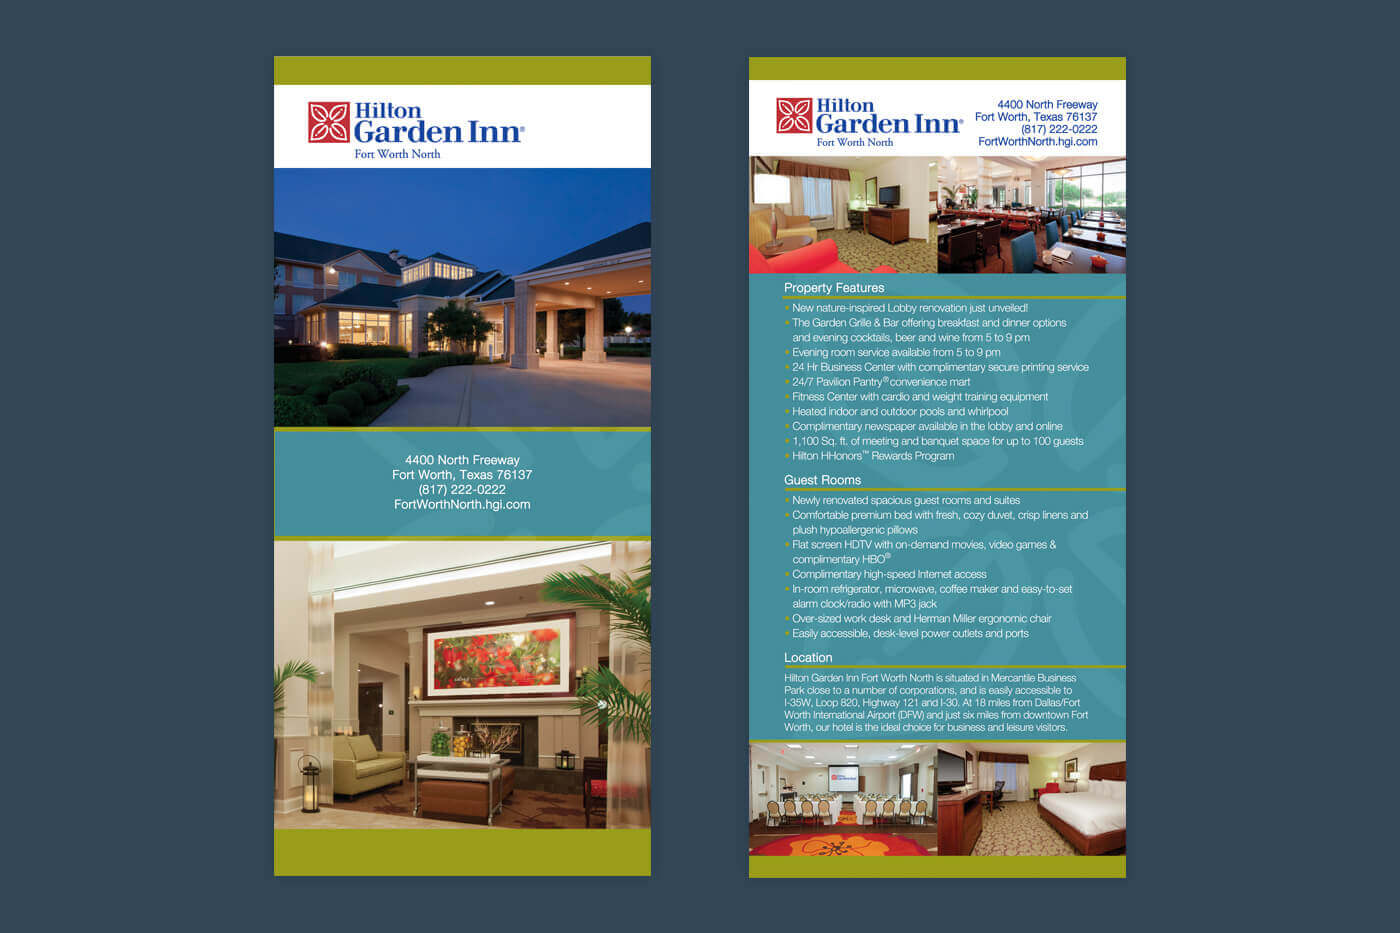 Marketing Solutions - Hilton Garden Inn Fort Worth North Rackcard